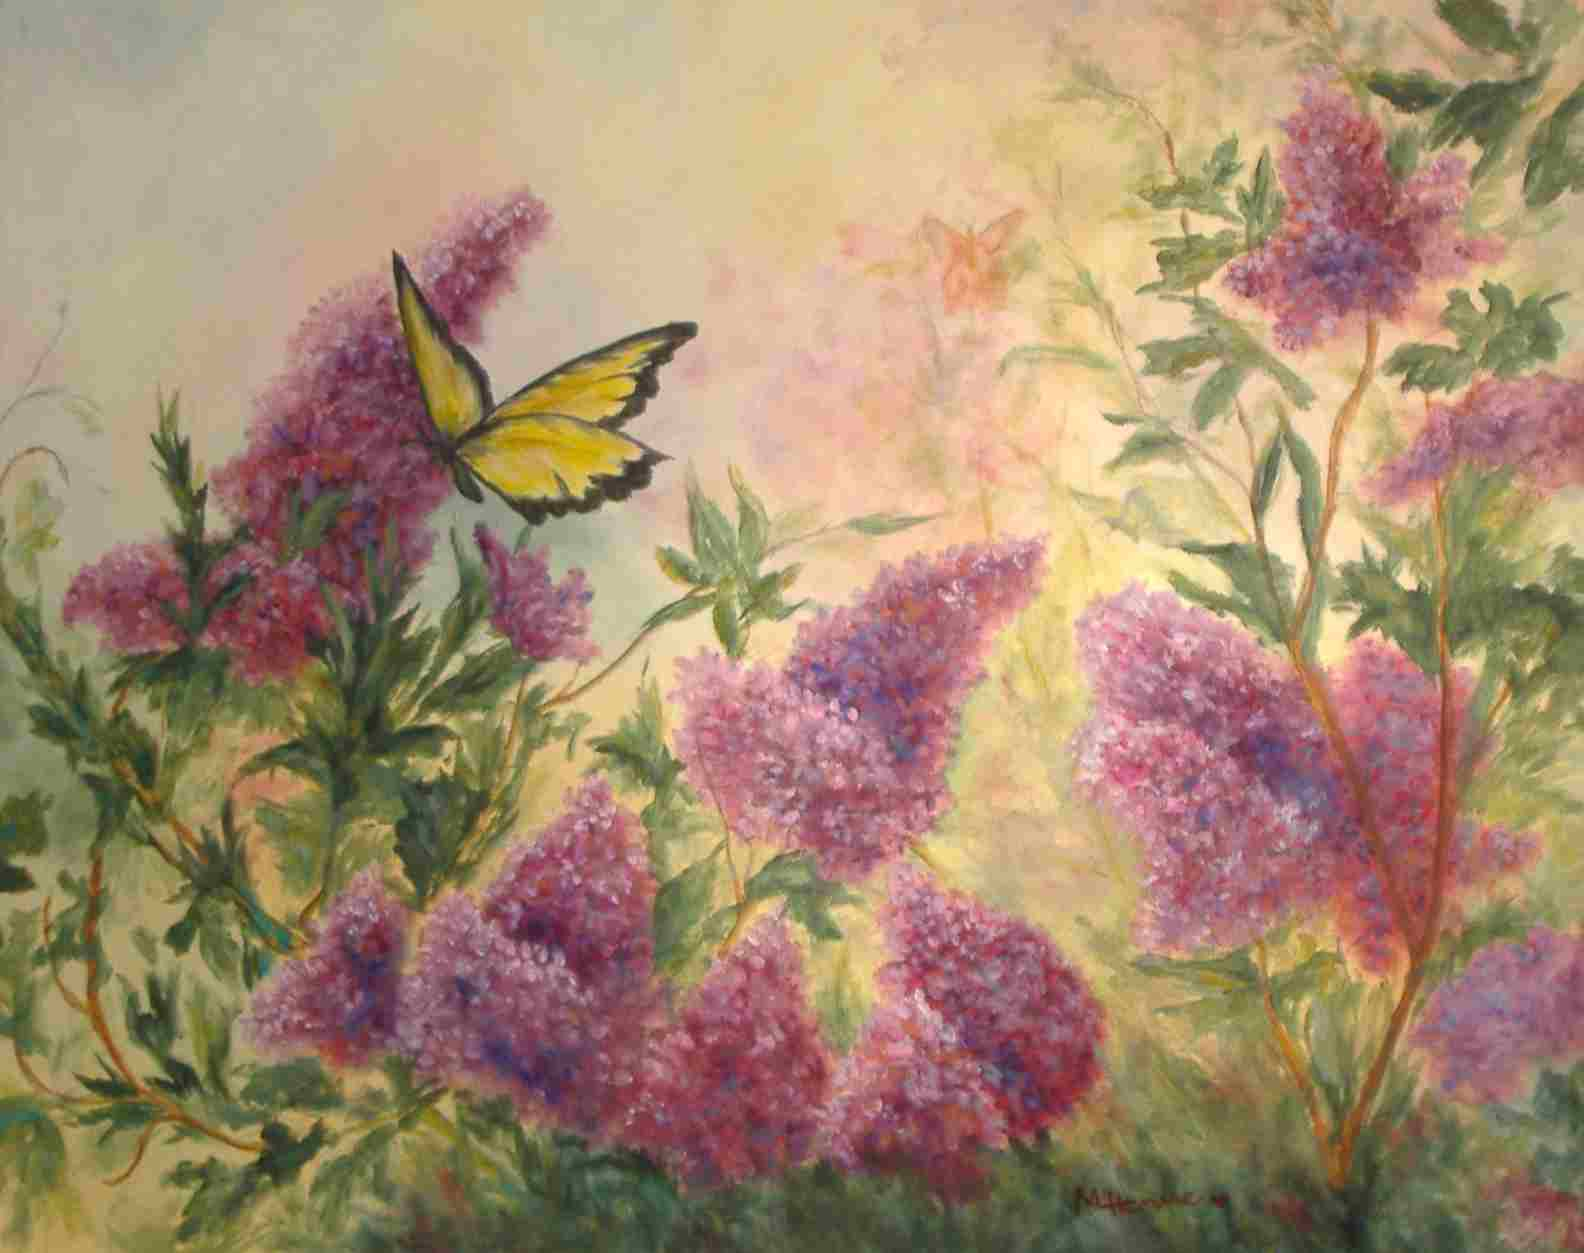 Lilacs & Butterflies - Oil painting by Mary Lou Henne